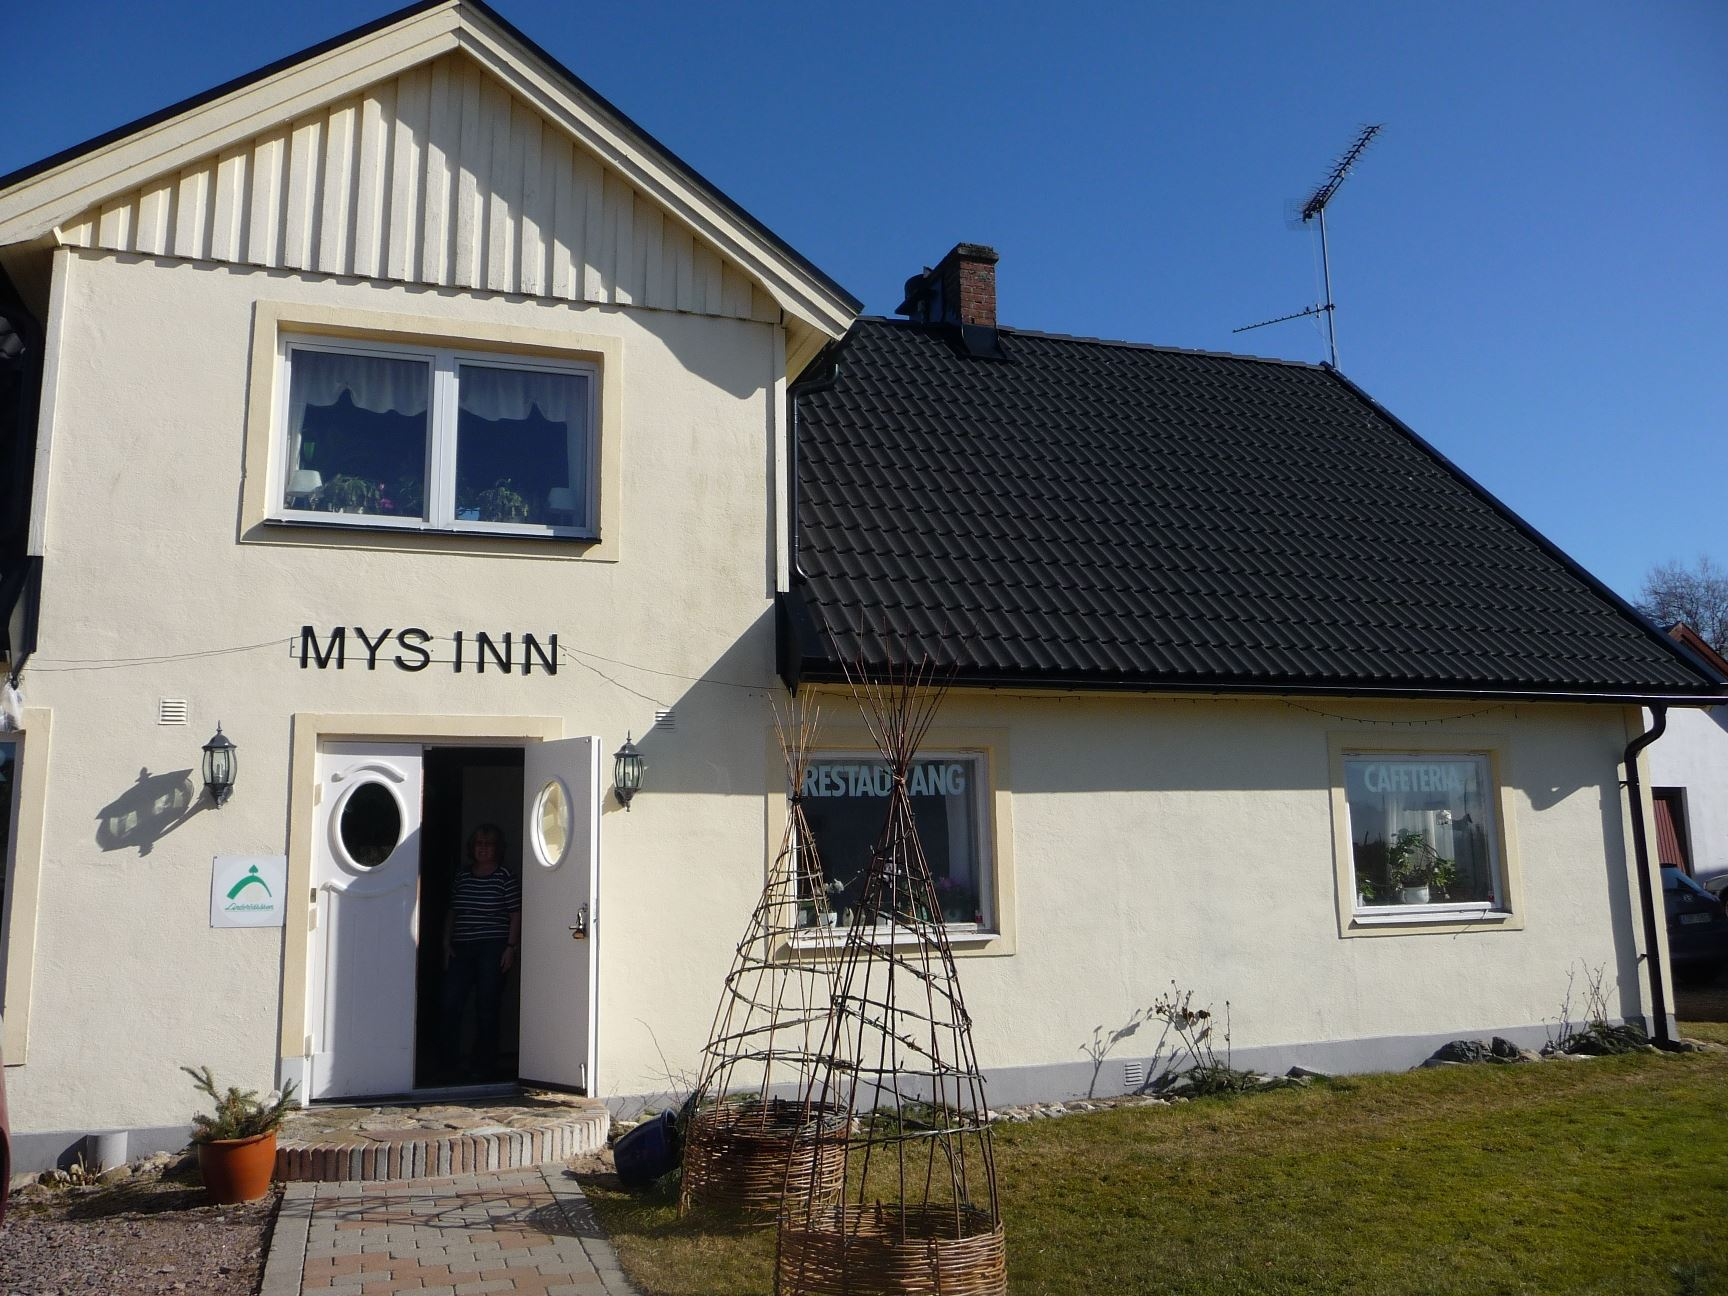 Mys Inn Bed & Breakfast